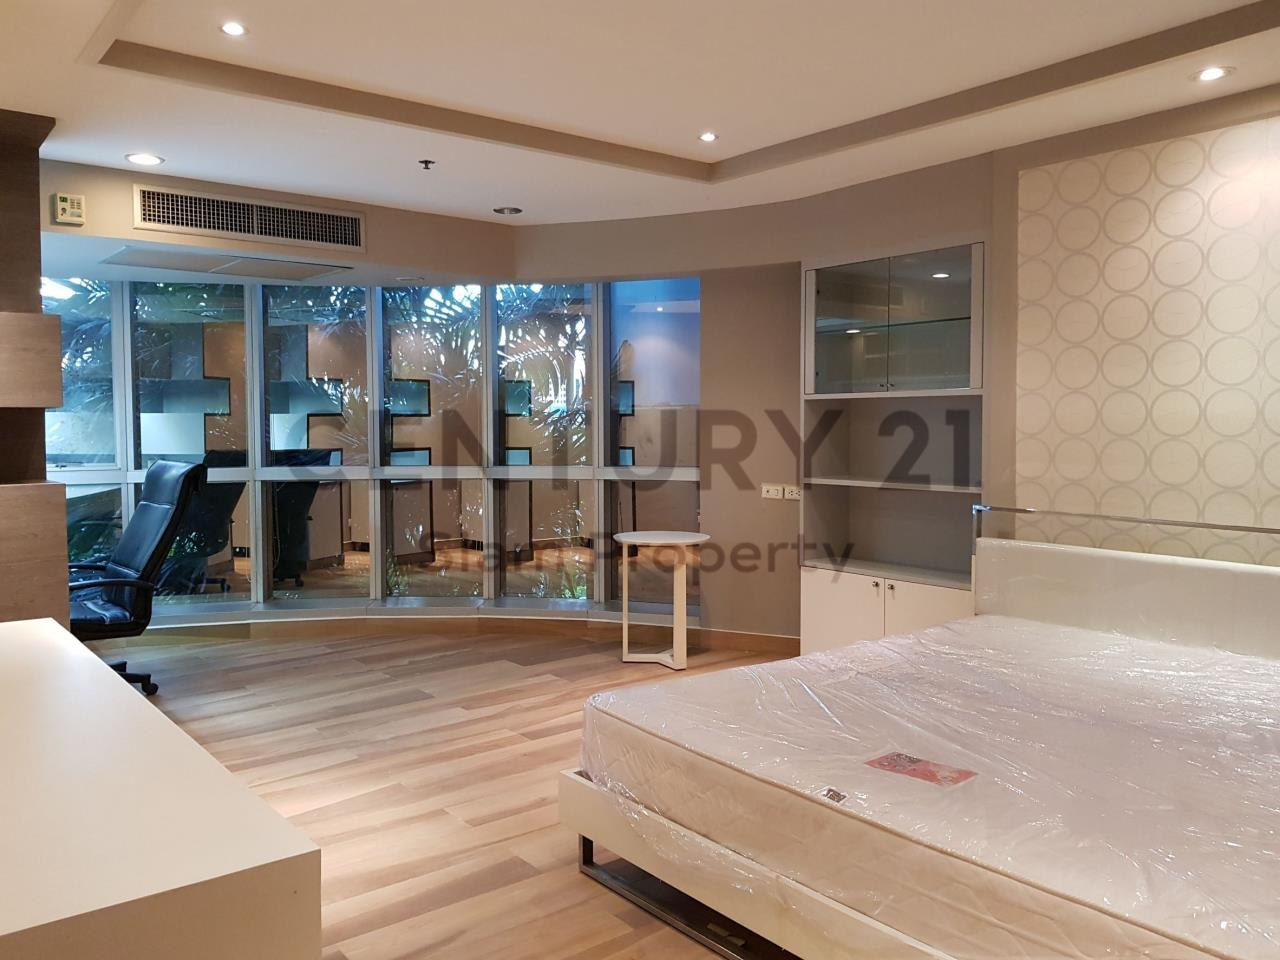 Century21 Siam Property Agency's The Trendy Condominium 12